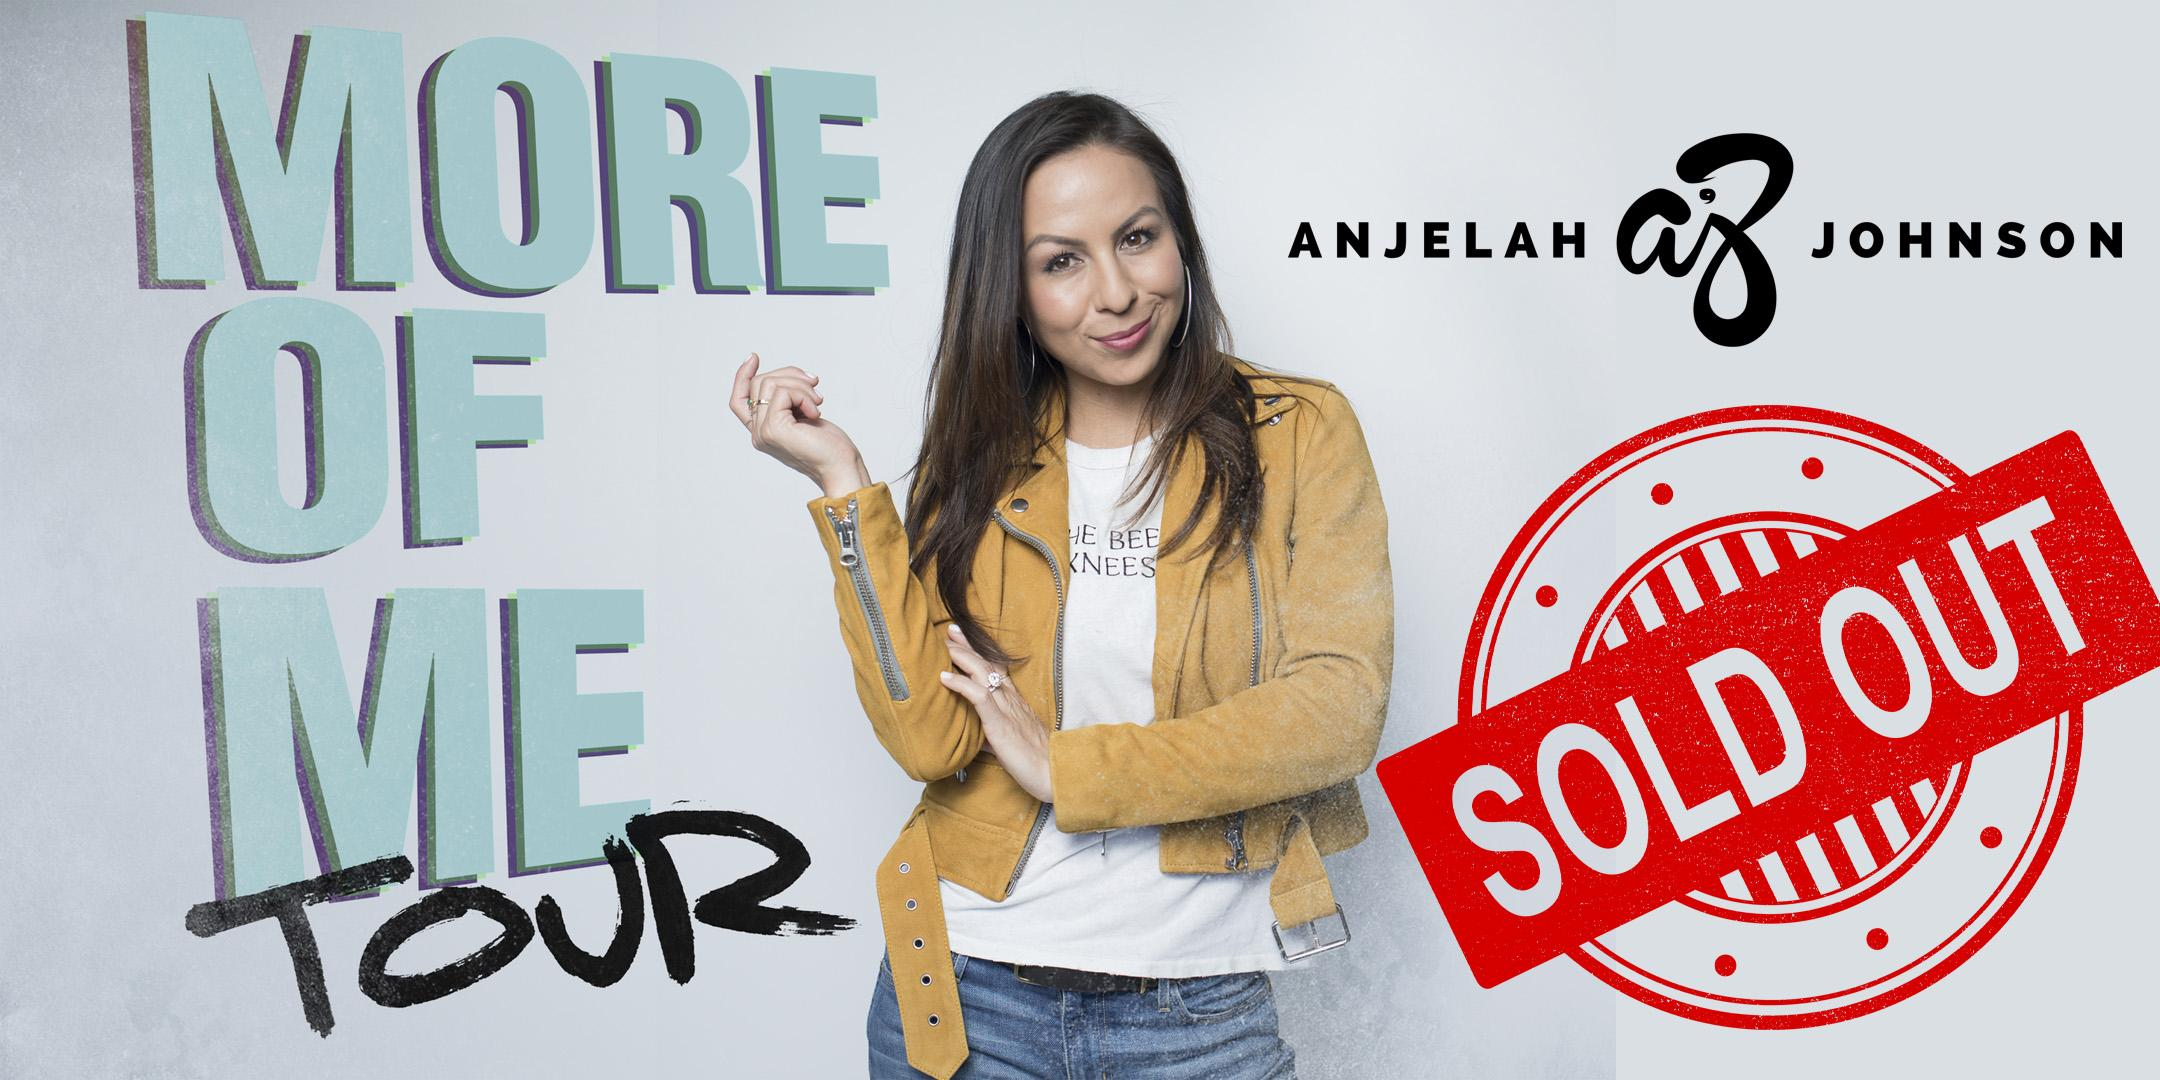 Anjelah Johnson - TH Feb 28th - 7:30pm SOLD OUT